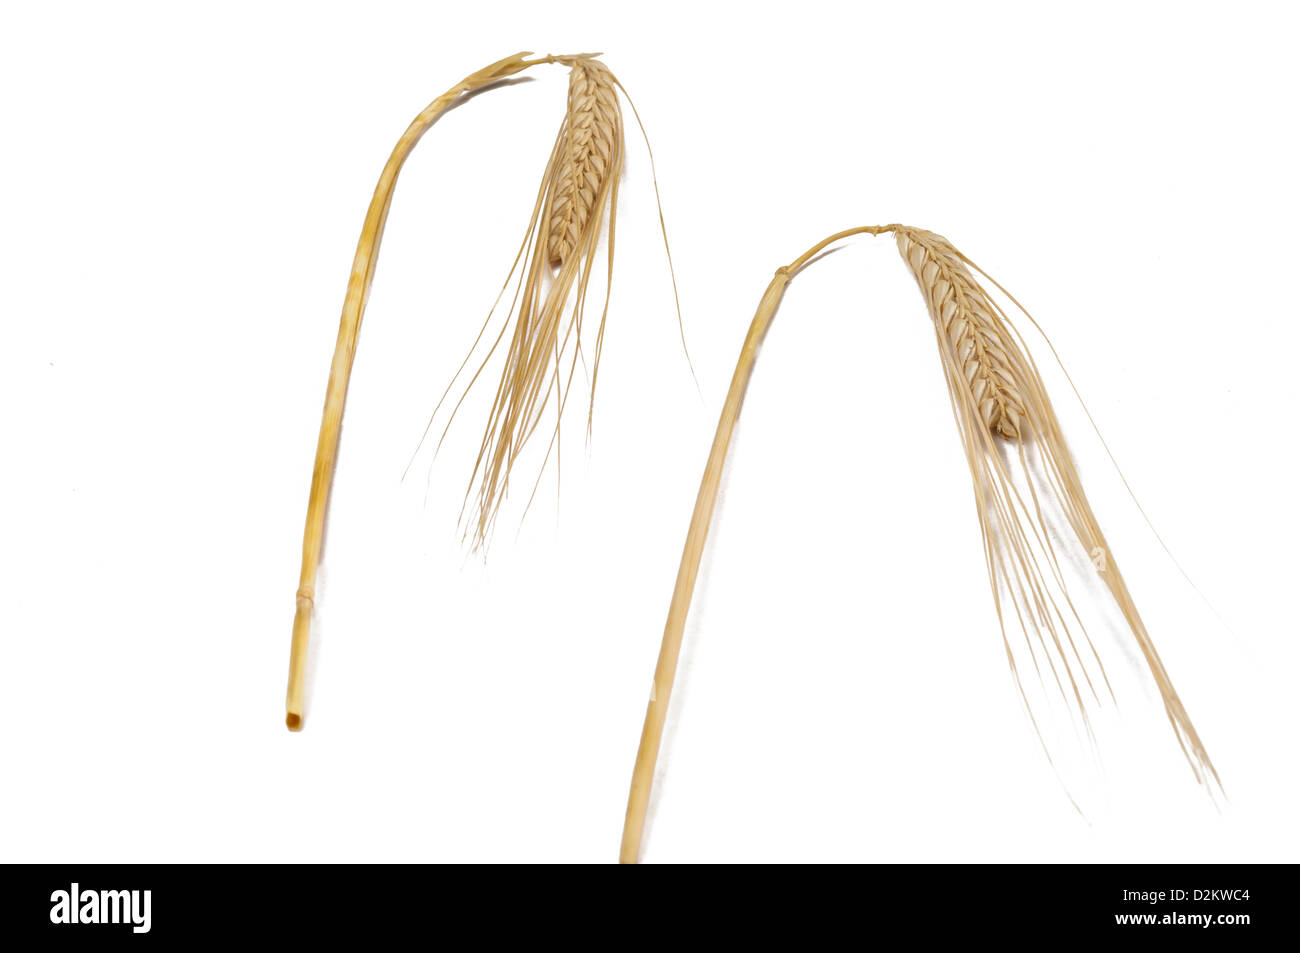 Ears of wheat (Triticum spp.) - Stock Image